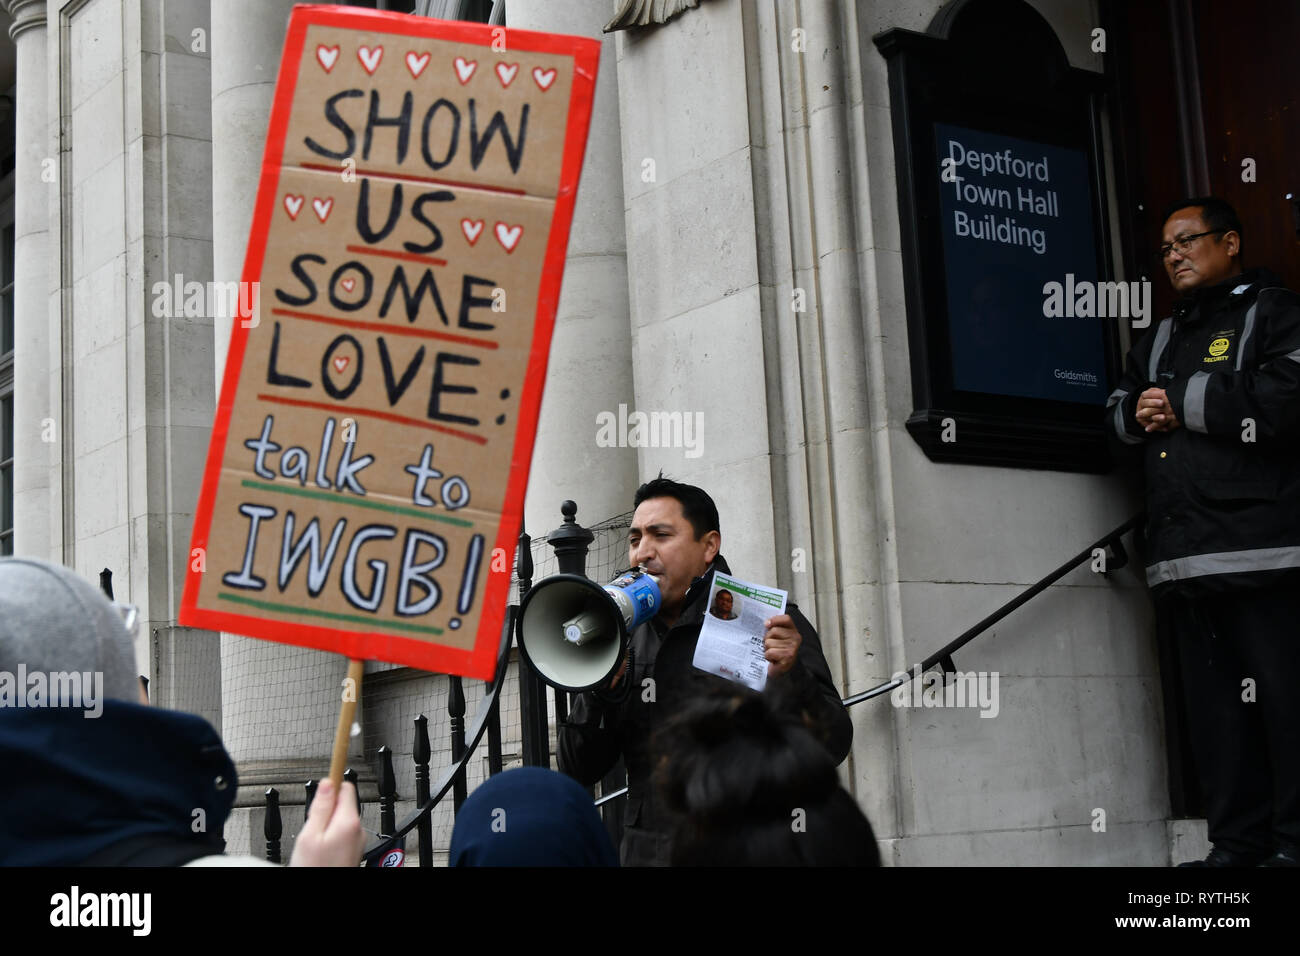 London, UK. 15th Mar 2019. Protesters of Goldsmiths Anti-Racist Action take action occupied Deptford Town Hall building, Education Officer Hamna Imran was attacked at election week, faced racist abuse— with graffiti mocking her accent and her banner being stripped down. Shame on the UK demon-cracy racism year in year oppresses of all minority. Credit: Picture Capital/Alamy Live News - Stock Image